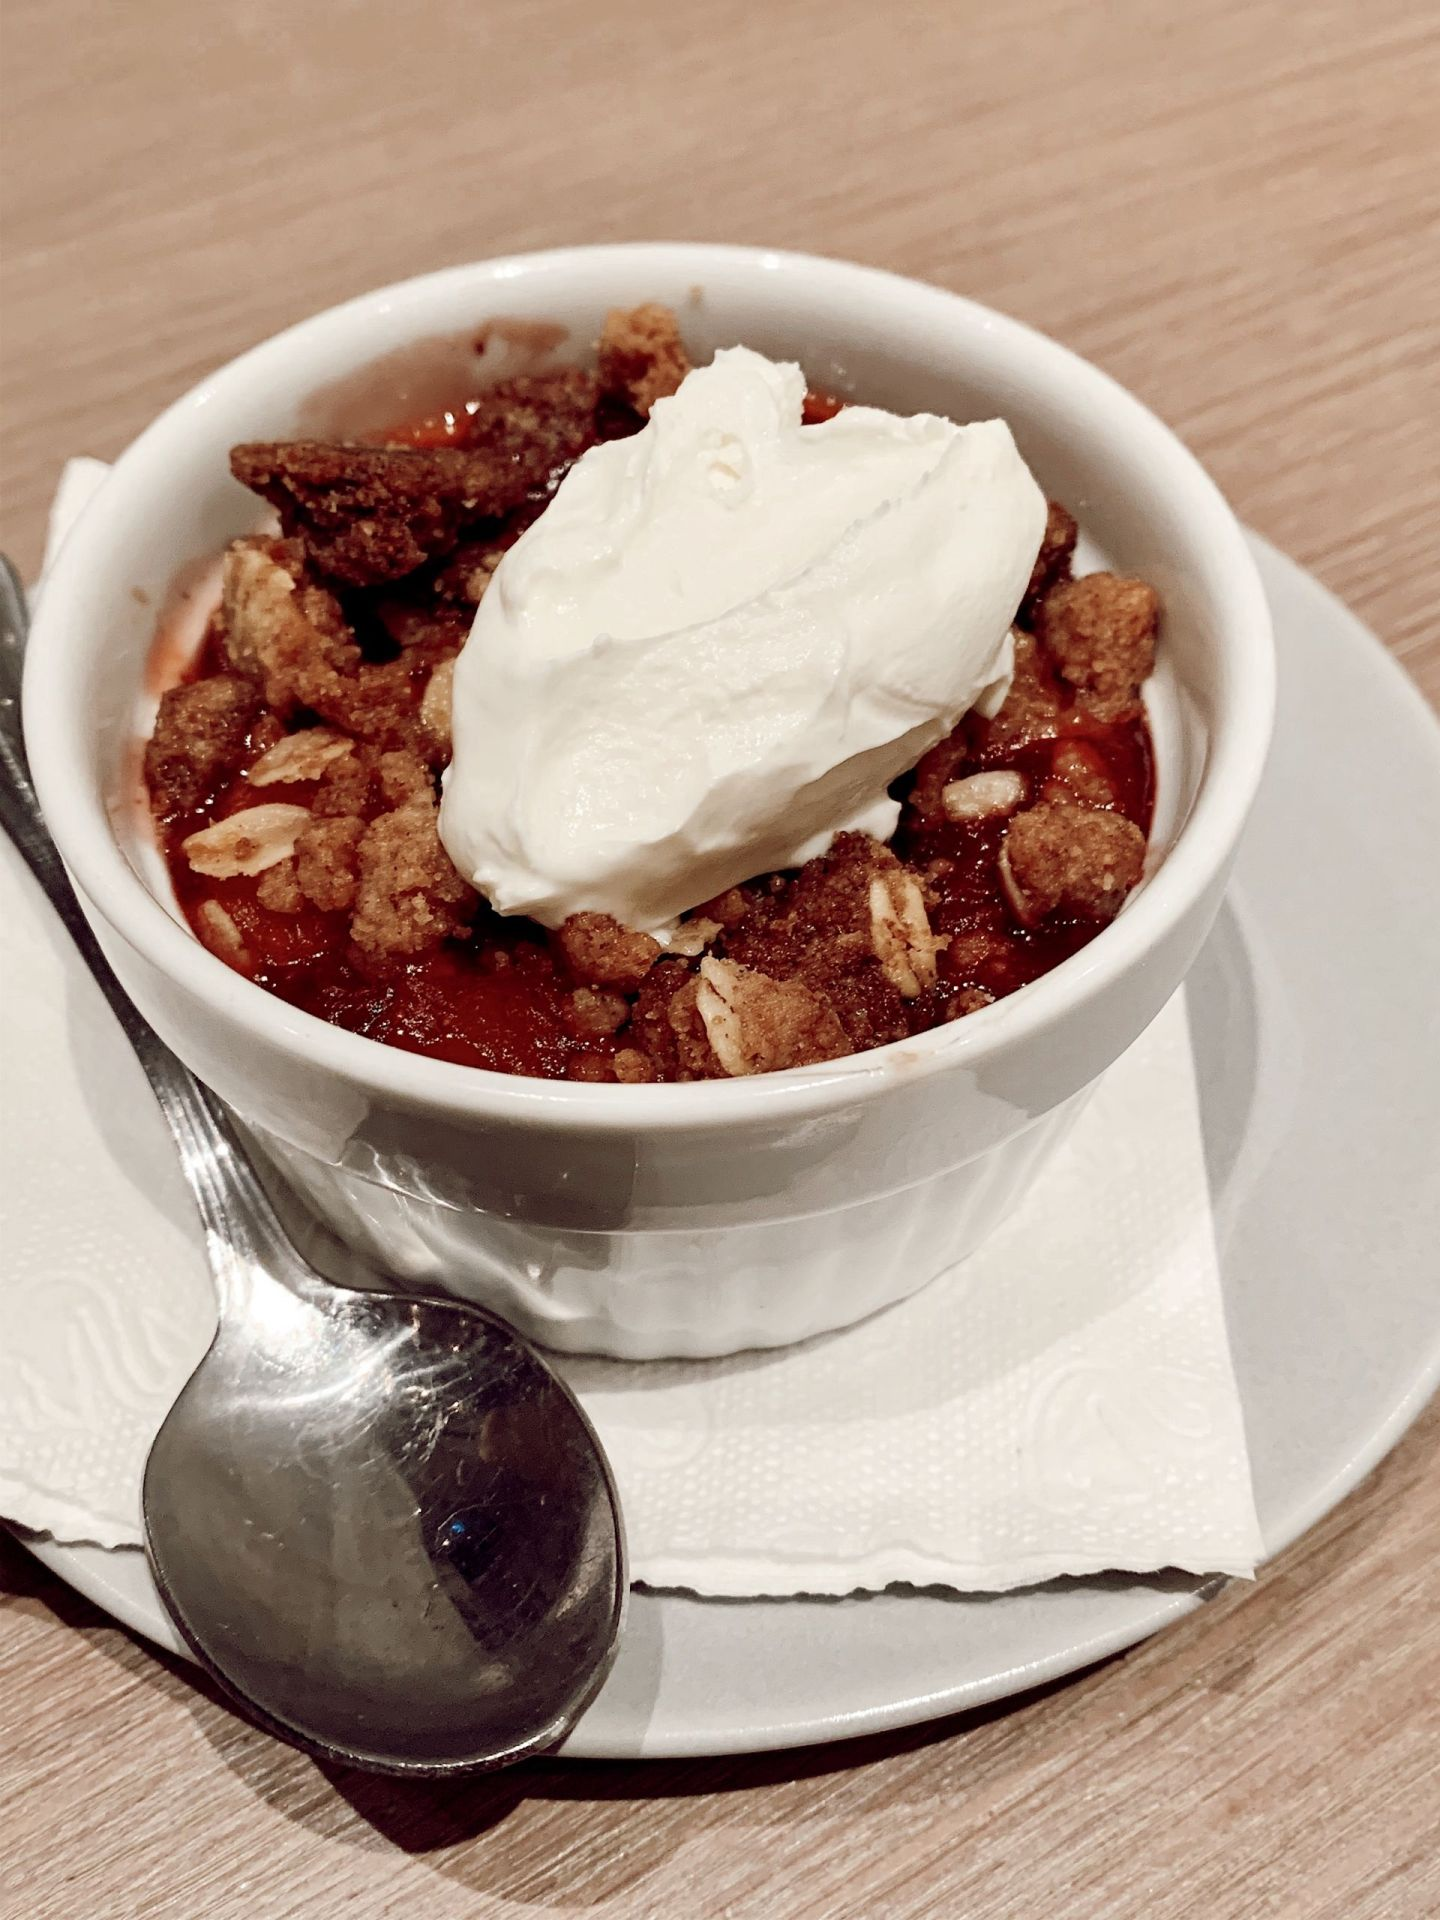 STRAWBERRY/PEACH CRUMBLE